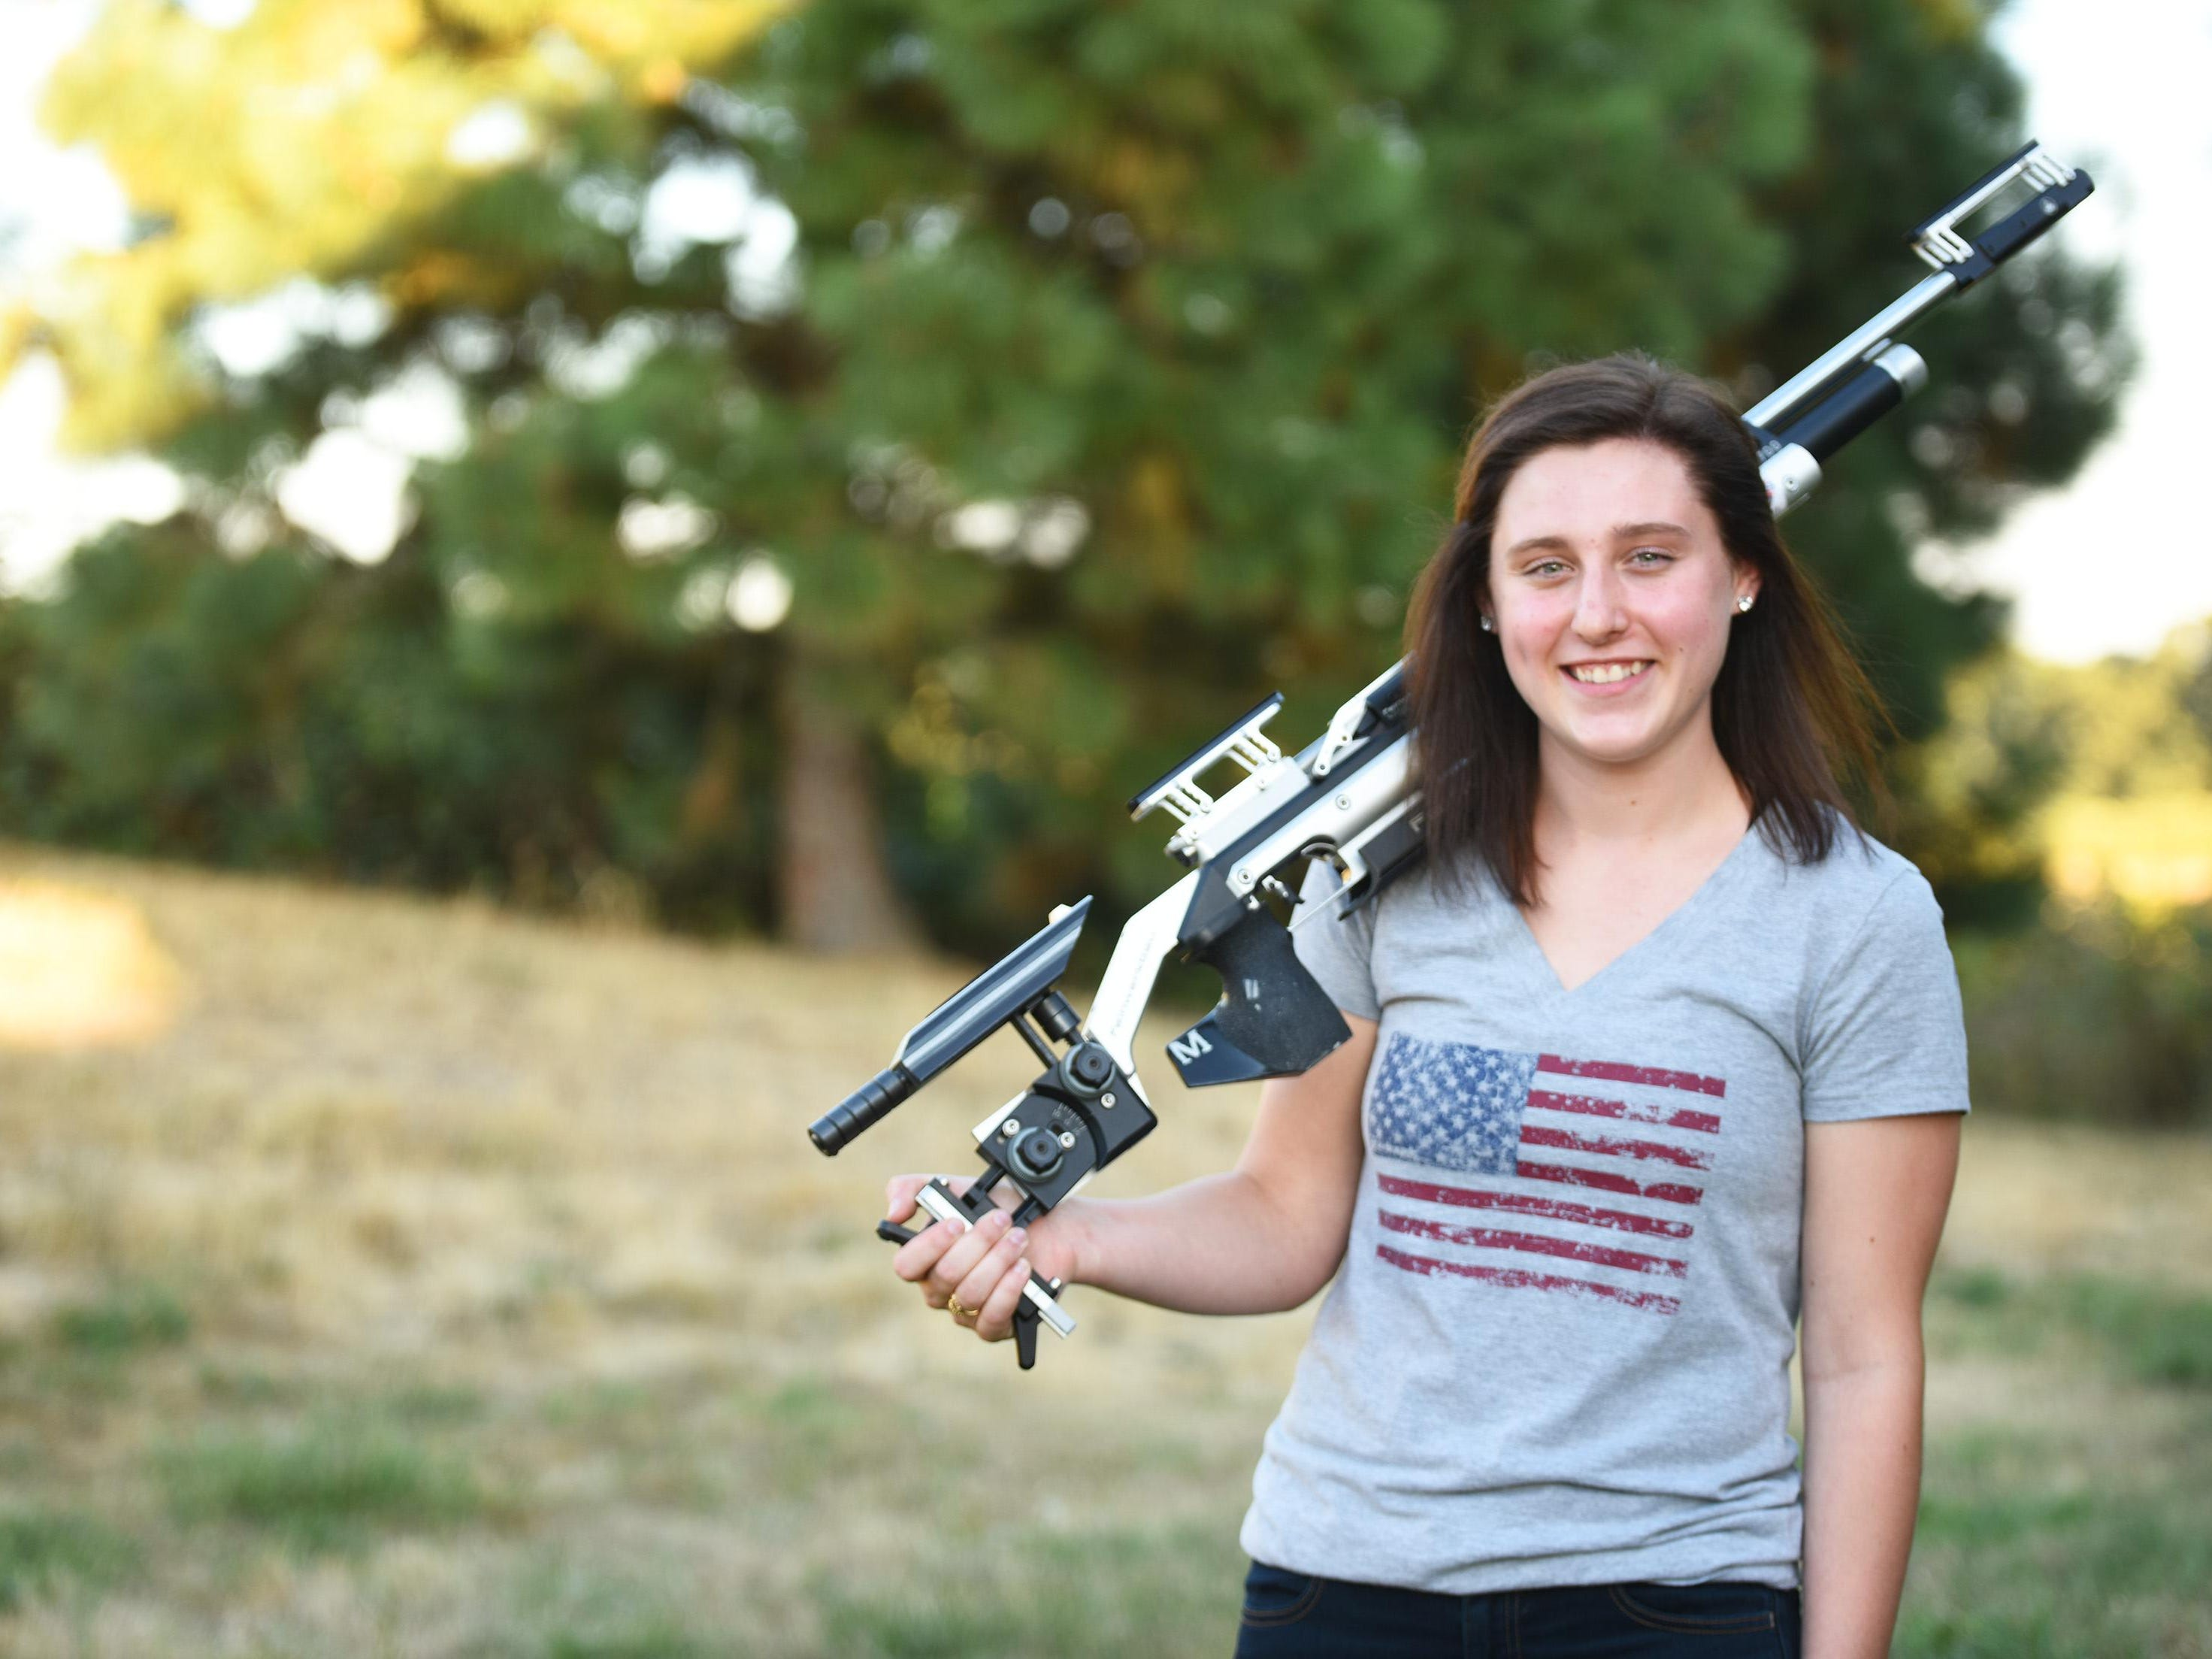 In August, Silverton High School junior Emily Cock competed as a precision rifle shooter at the sport's World Cup event in Azerbaijan.